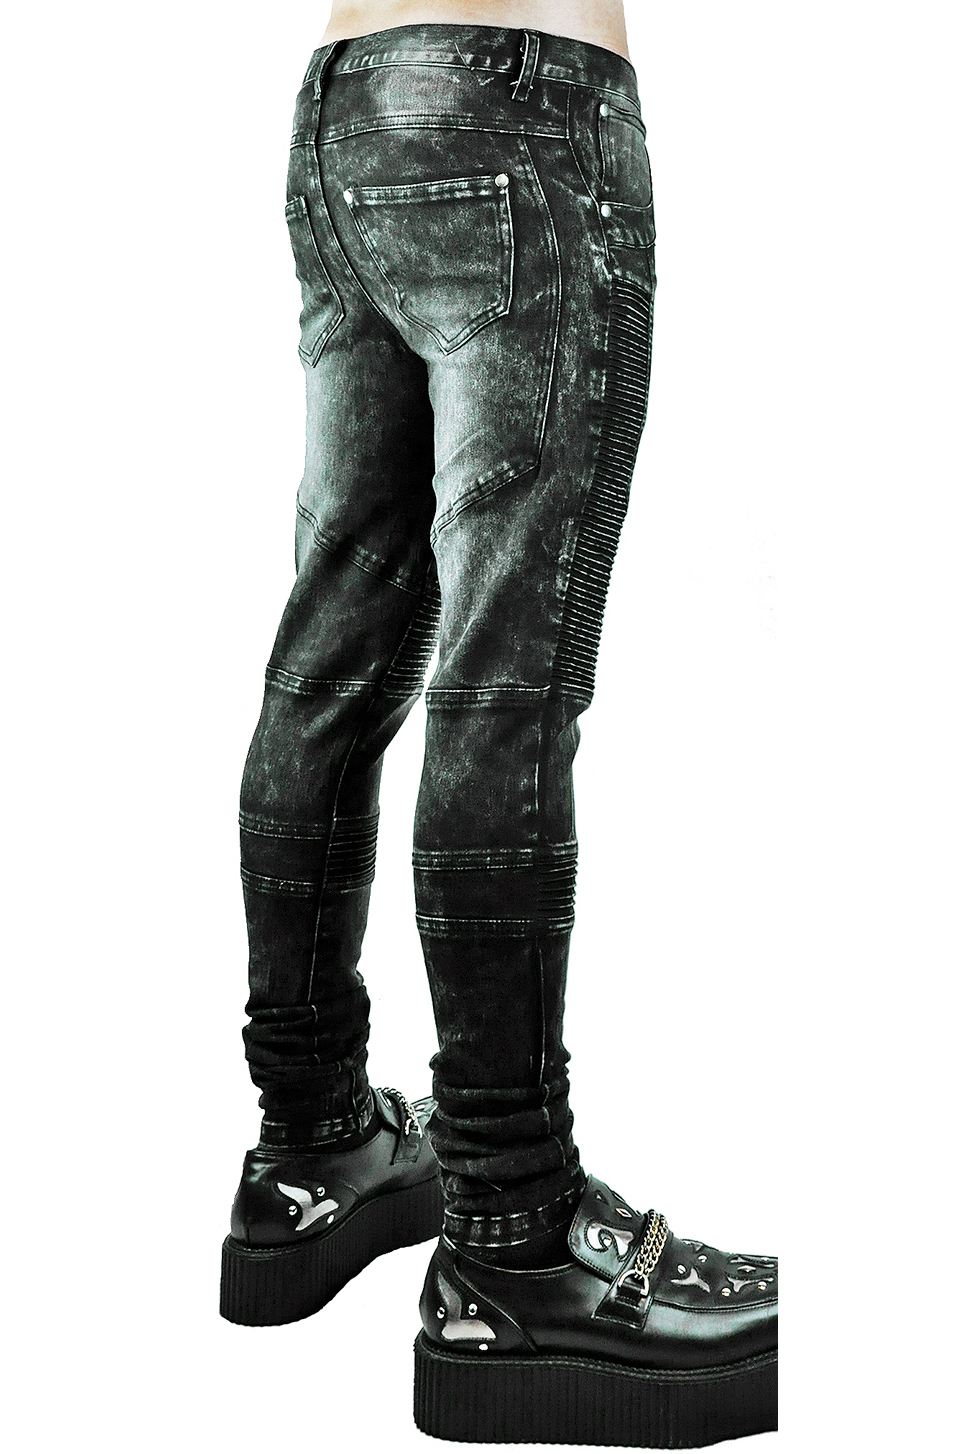 rebelsmarket_cryoflesh_5_pocket_ribbed_skinny_jeans_for_men_jeans_2.jpg